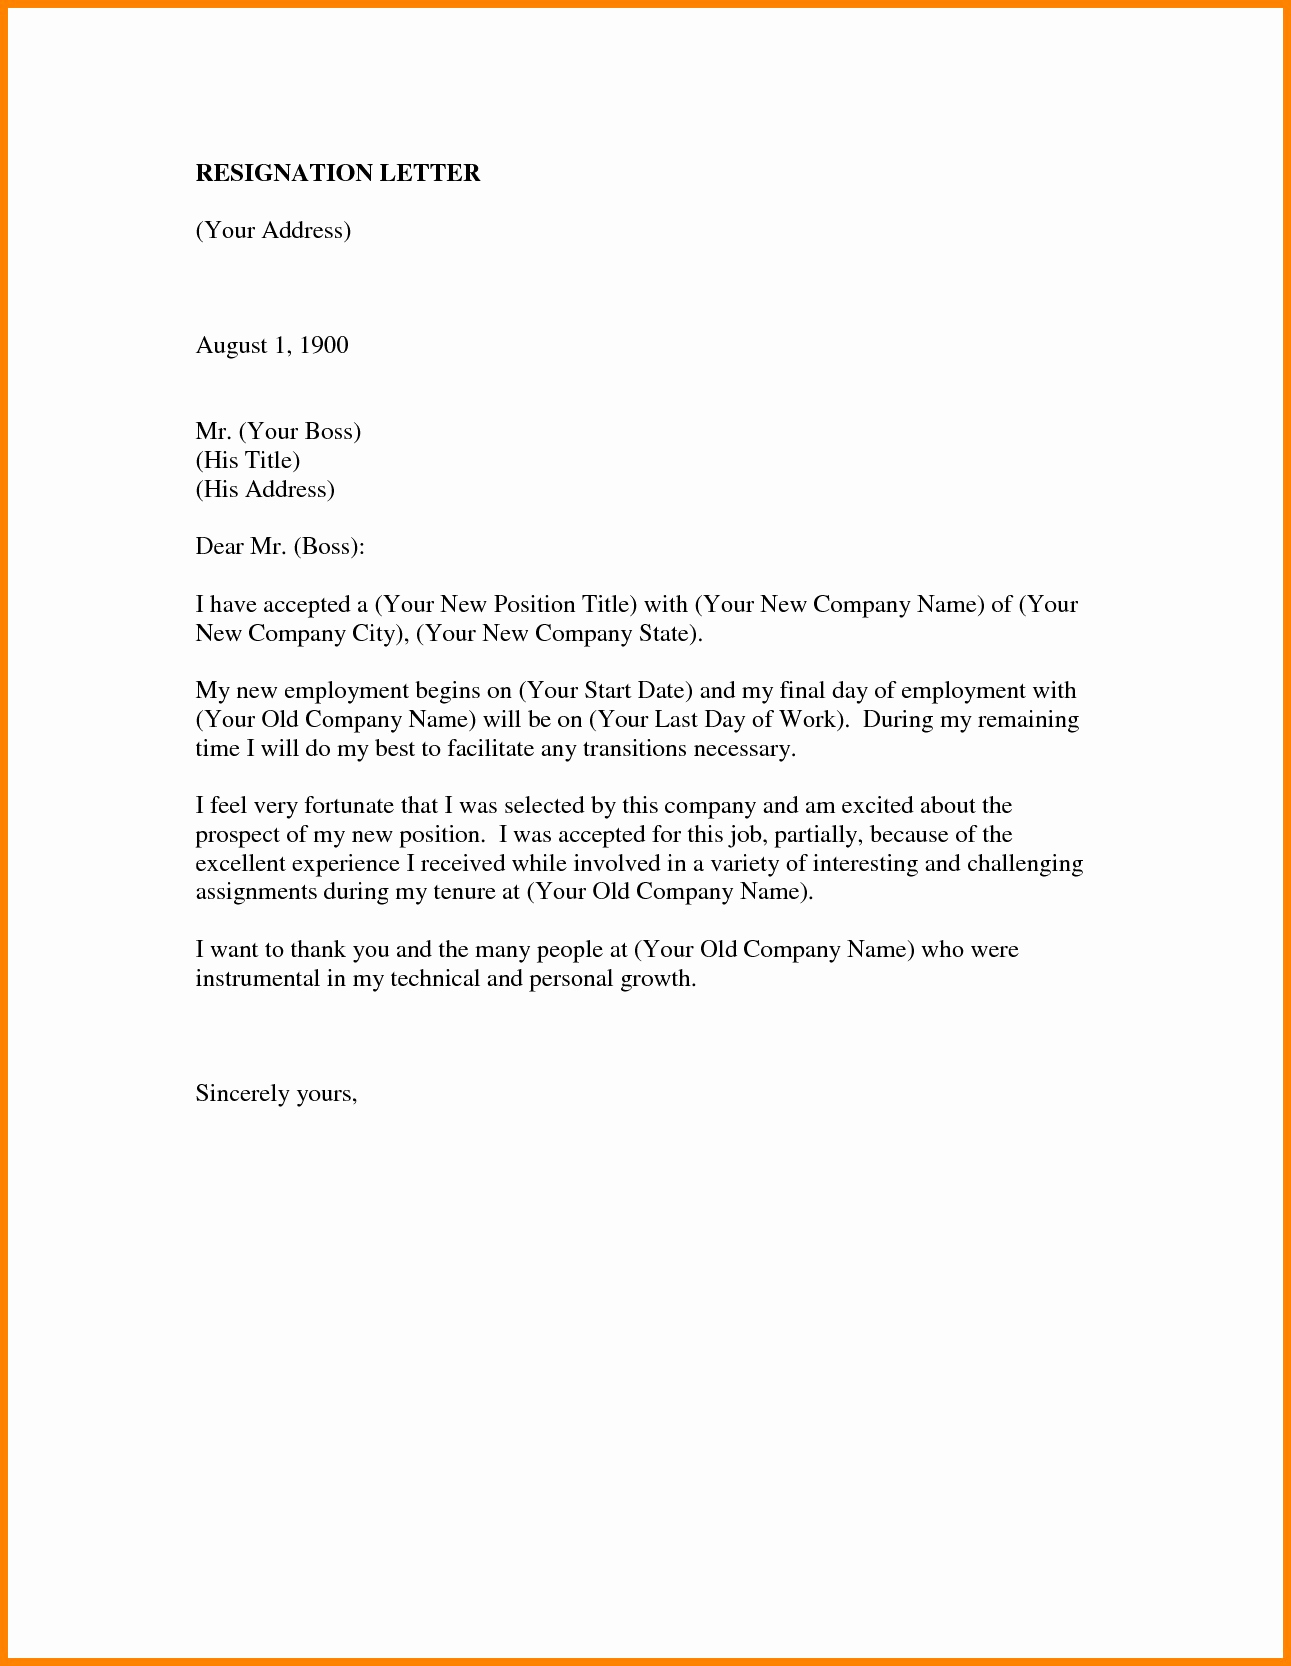 Letter Of Resignation Template Word Luxury Resignation Letter Template In Word format Fresh Job